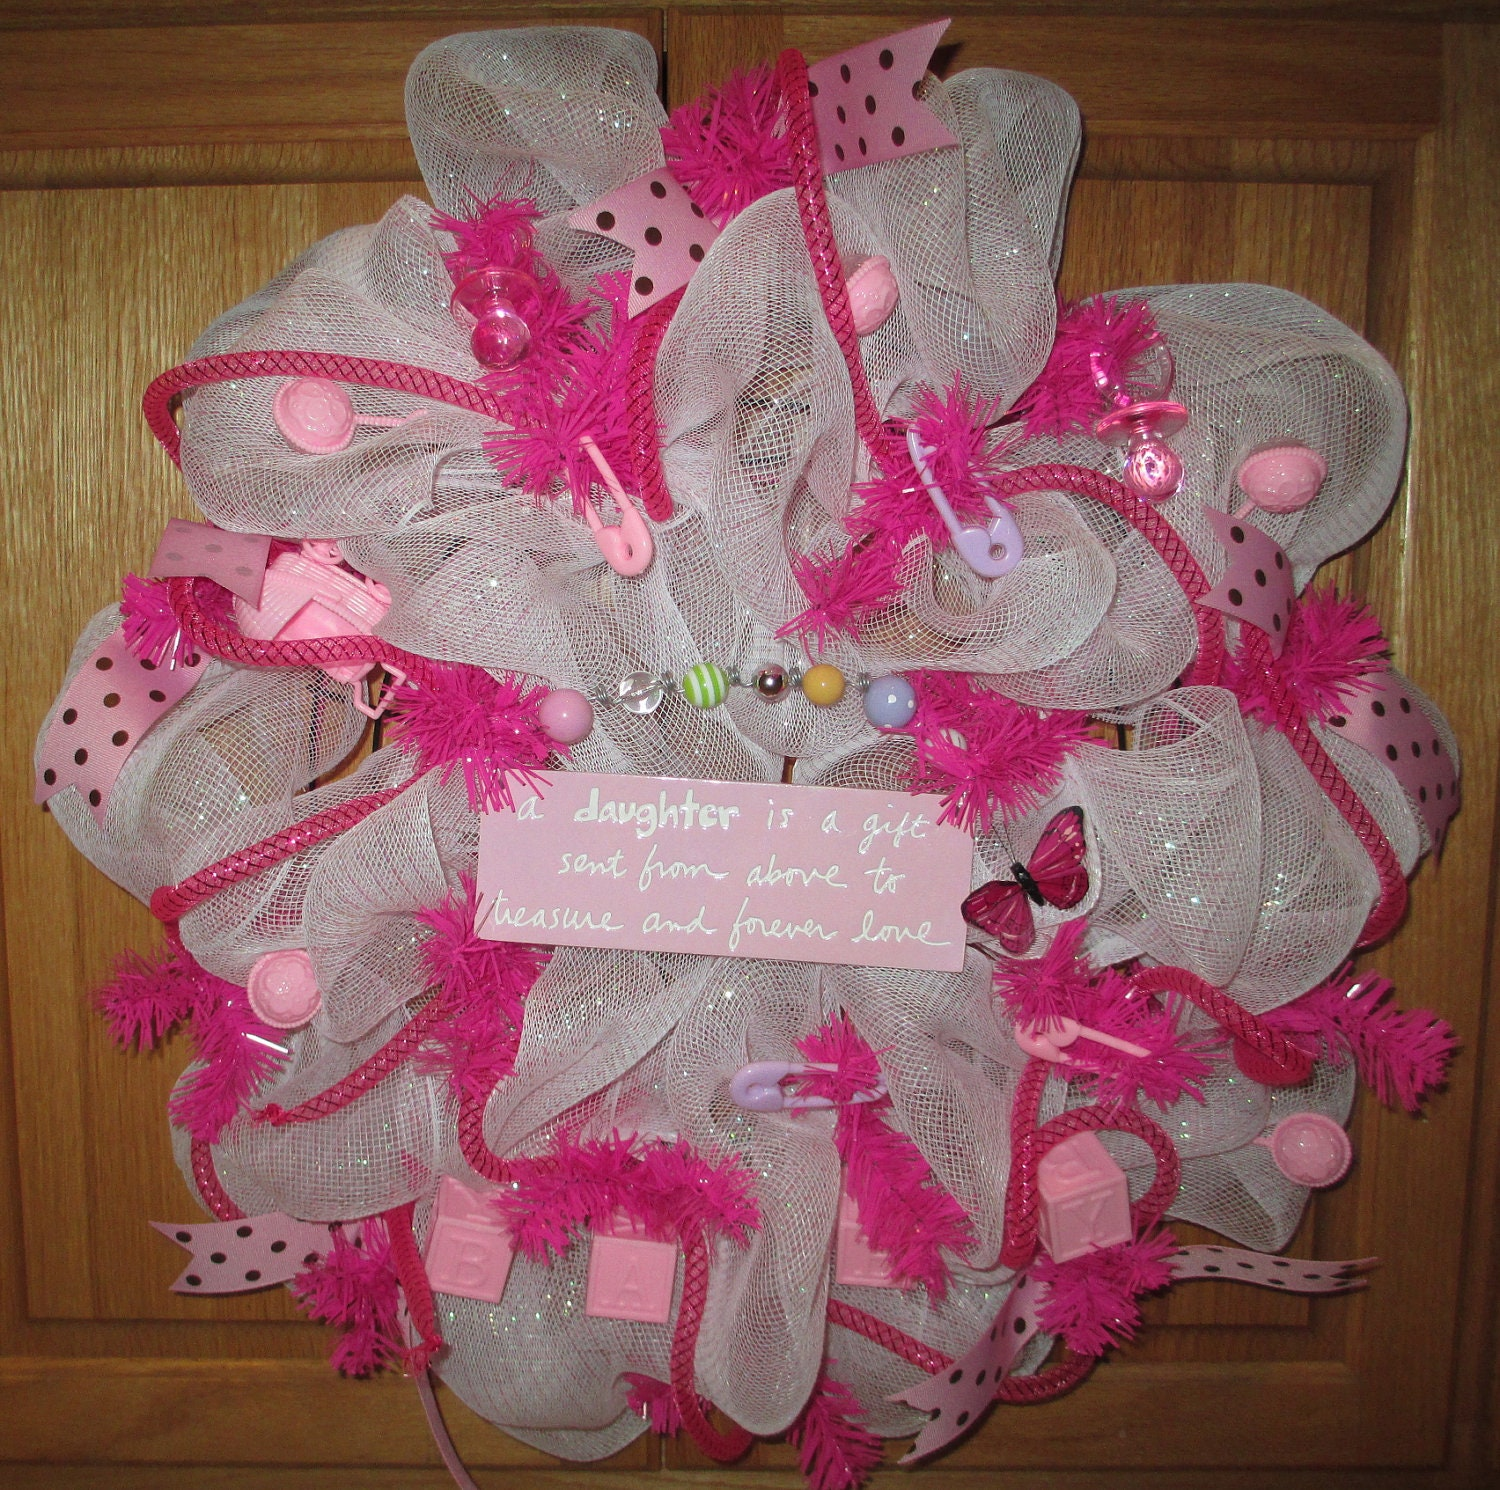 Baby Shower Wreath Instructions: Pink Baby Deco Mesh Wreath Perfect For Baby Shower Hospital